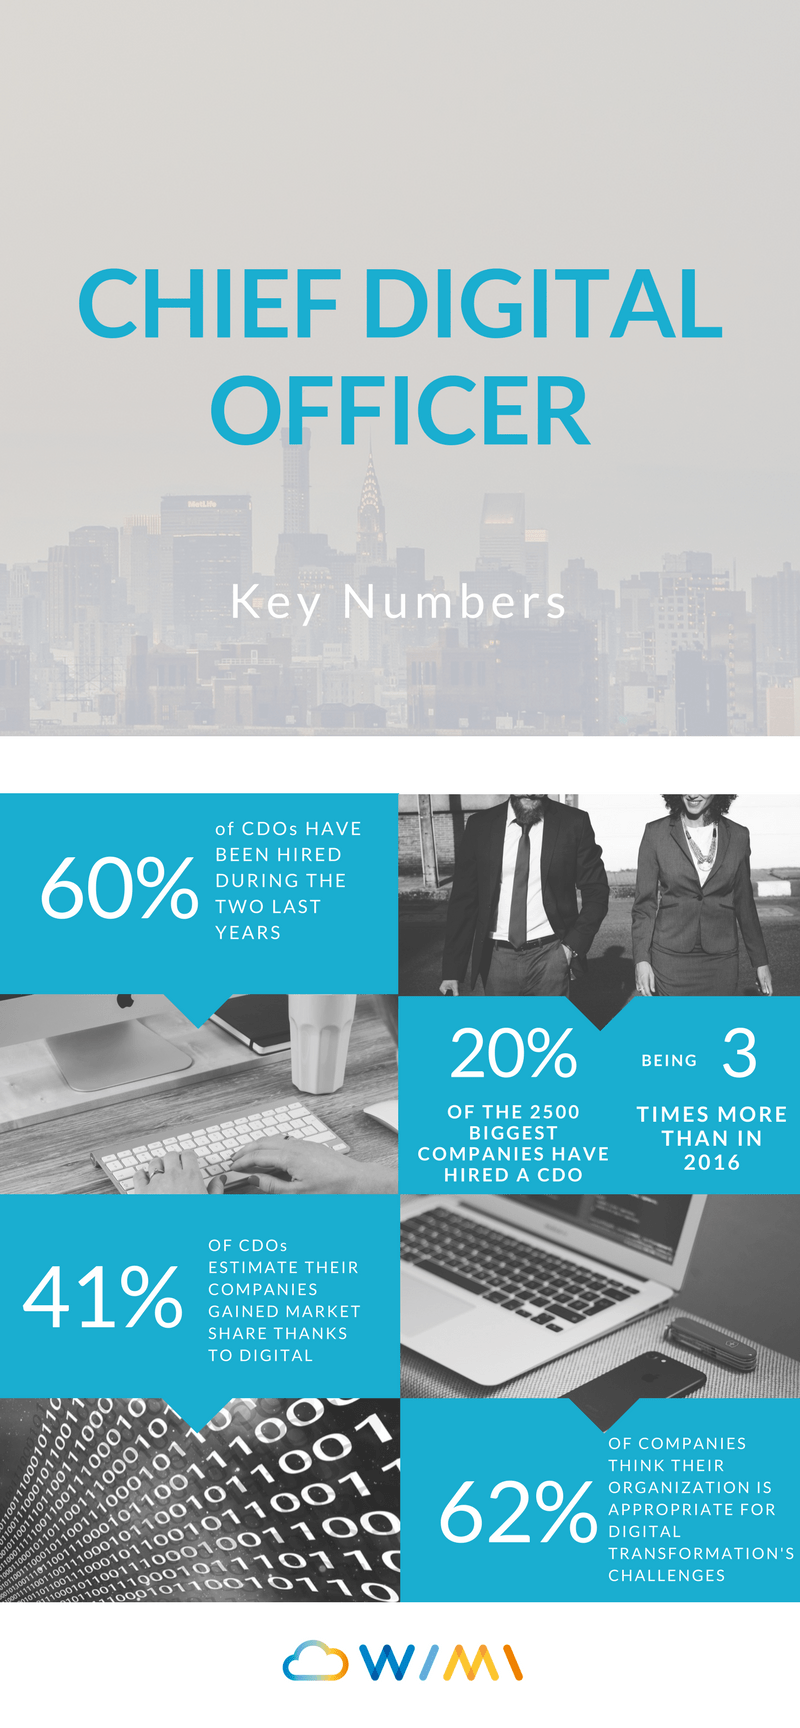 CDO Chief Digital Officer infographic key numbers